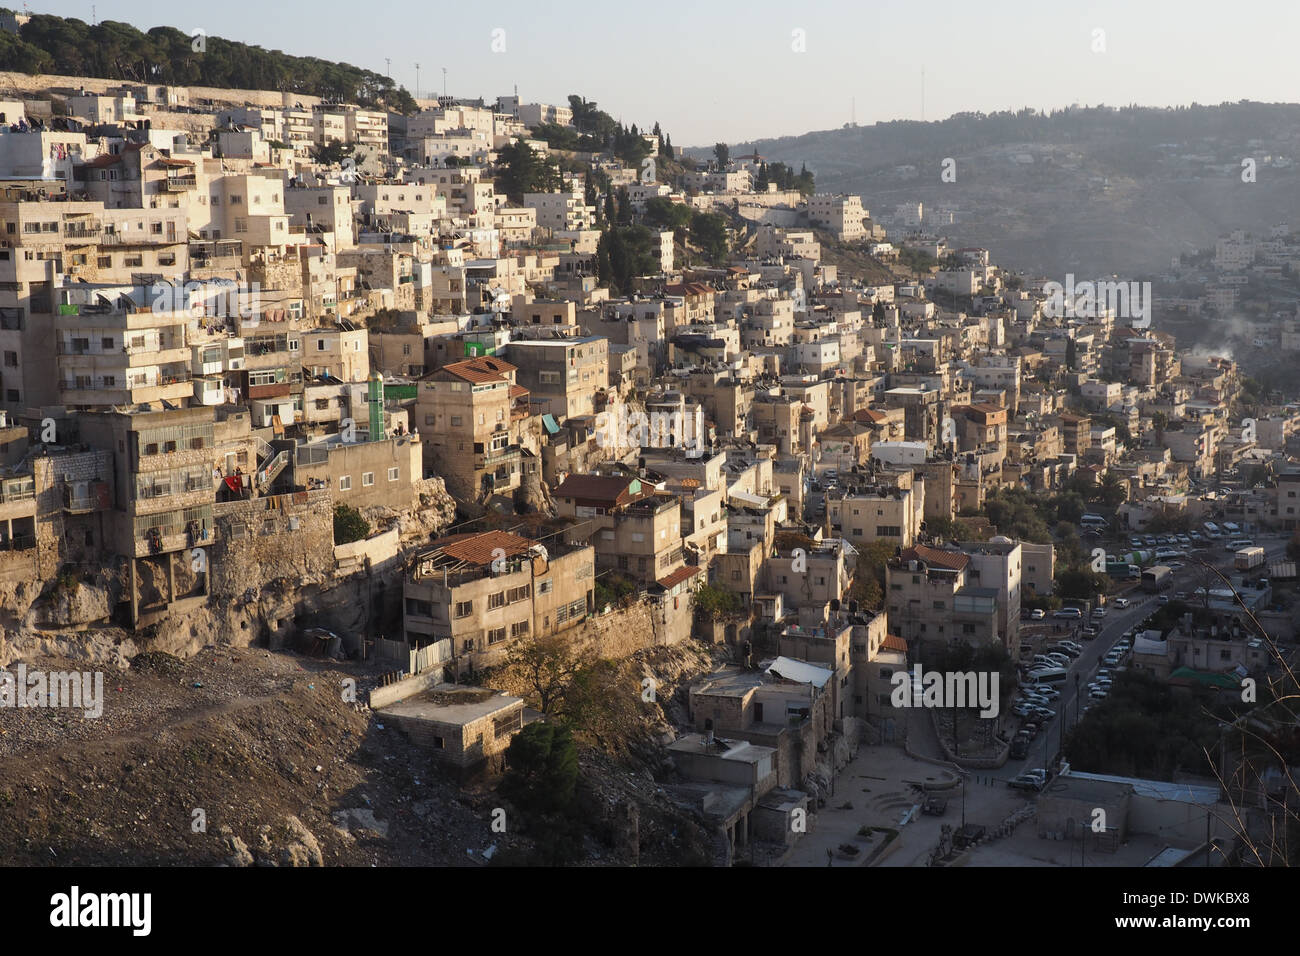 east-jerusalem-seen-from-derech-ha-ofel-st-jerusalem-DWKBX8.jpg